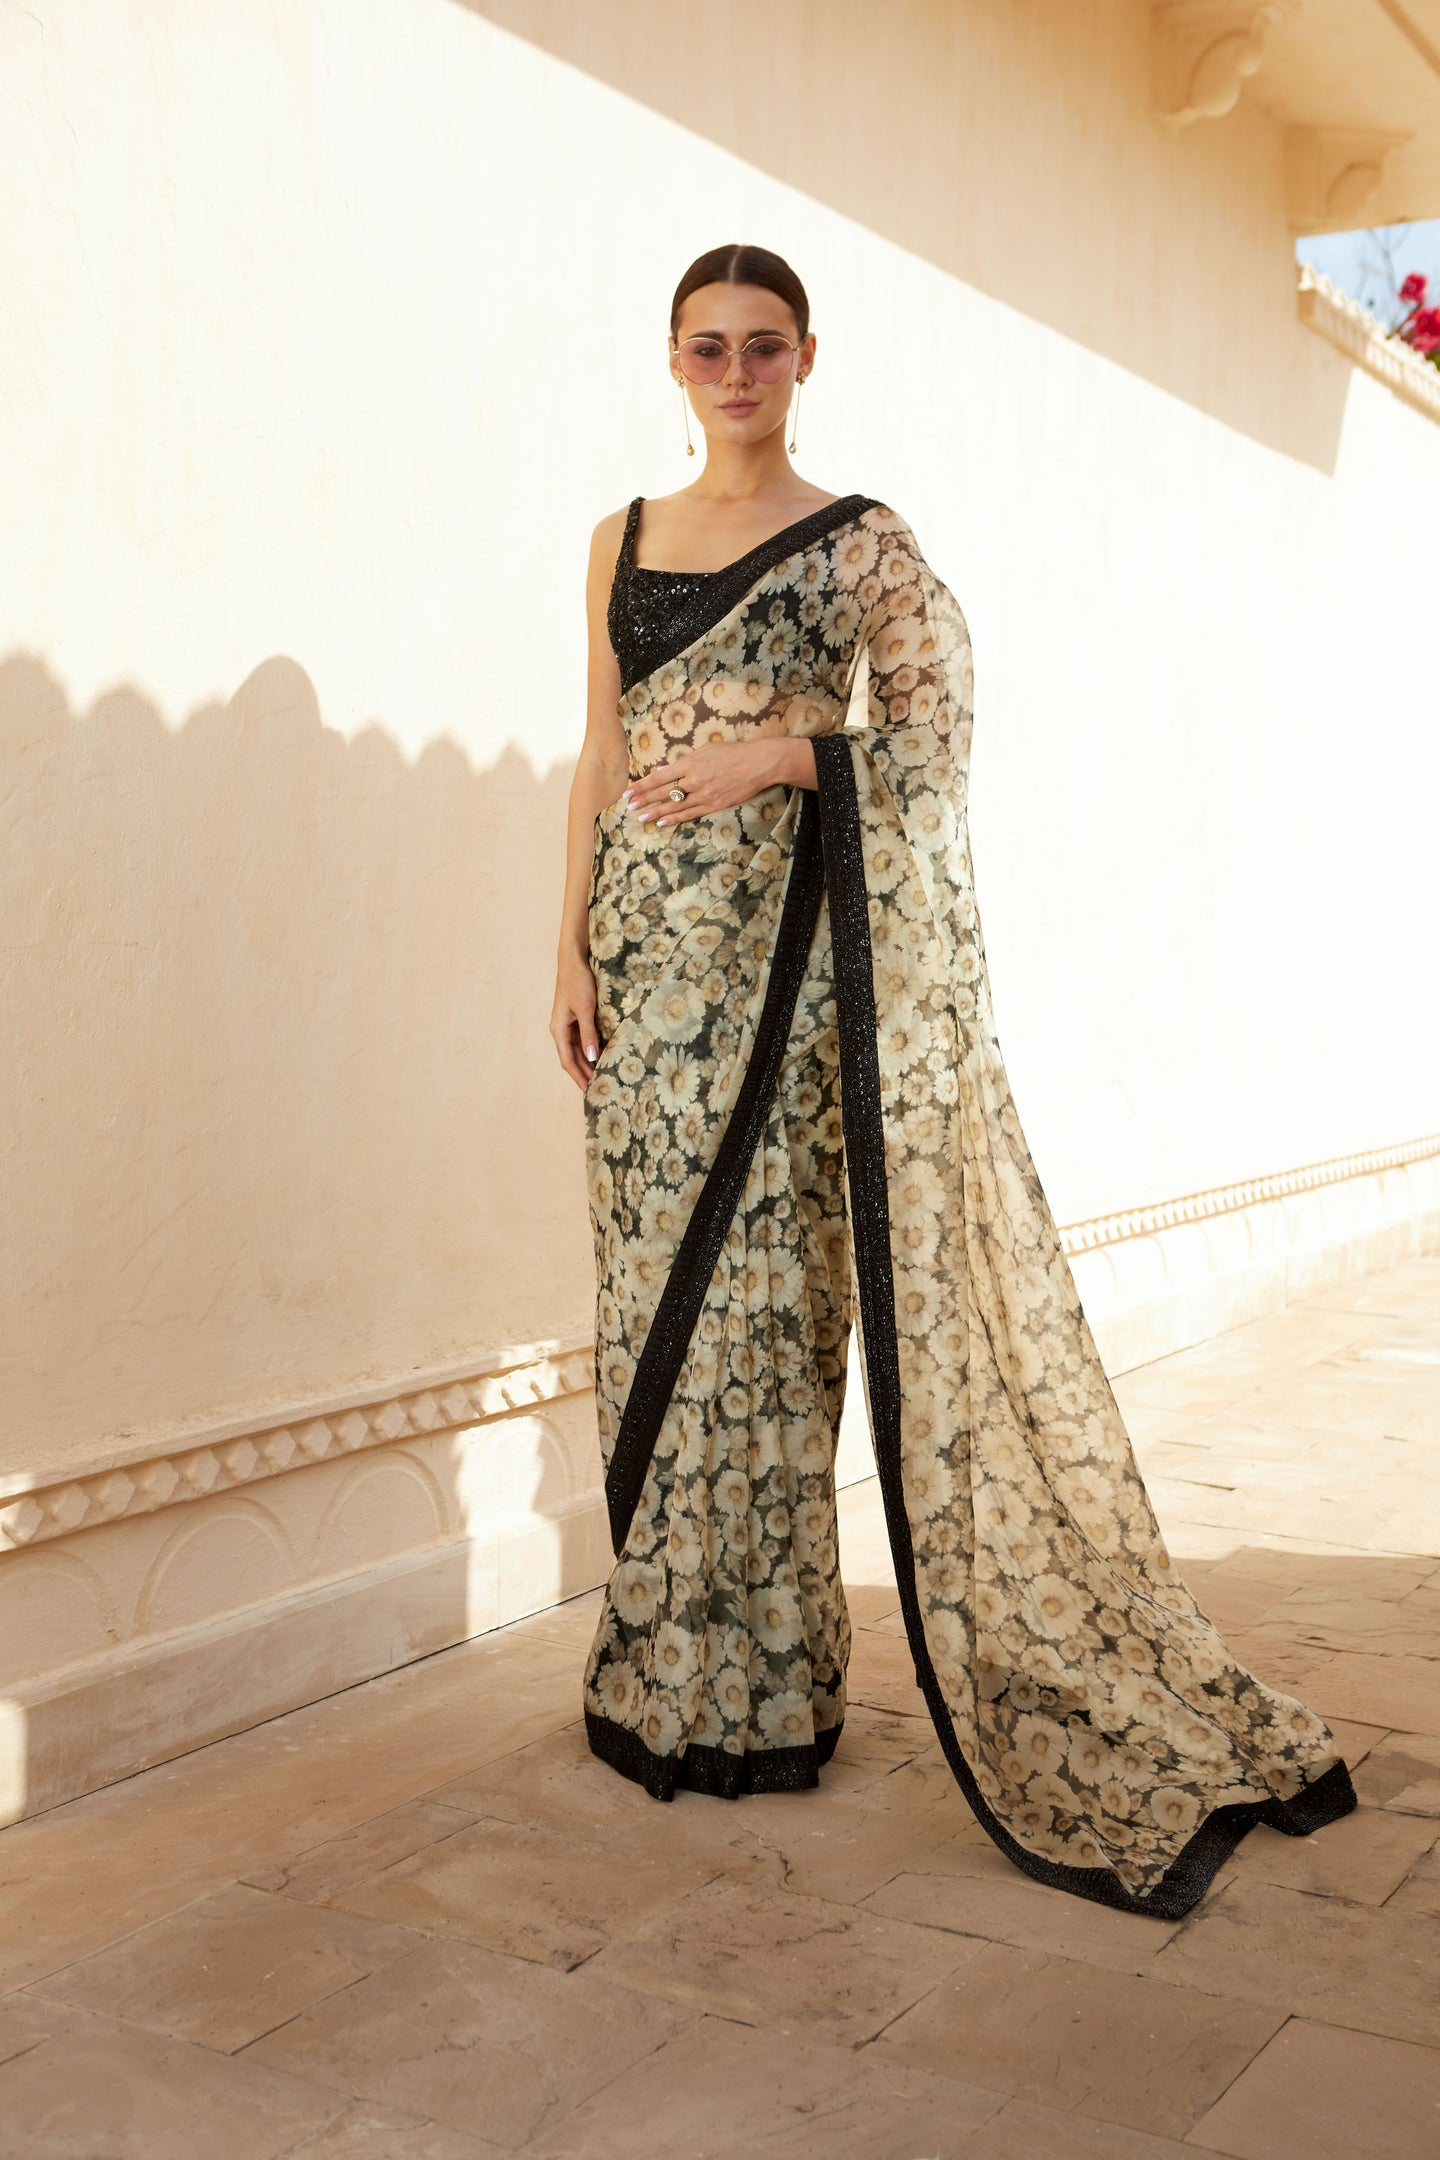 Sabyasachi monochrome Daisy printed sari - The Grand Trunk